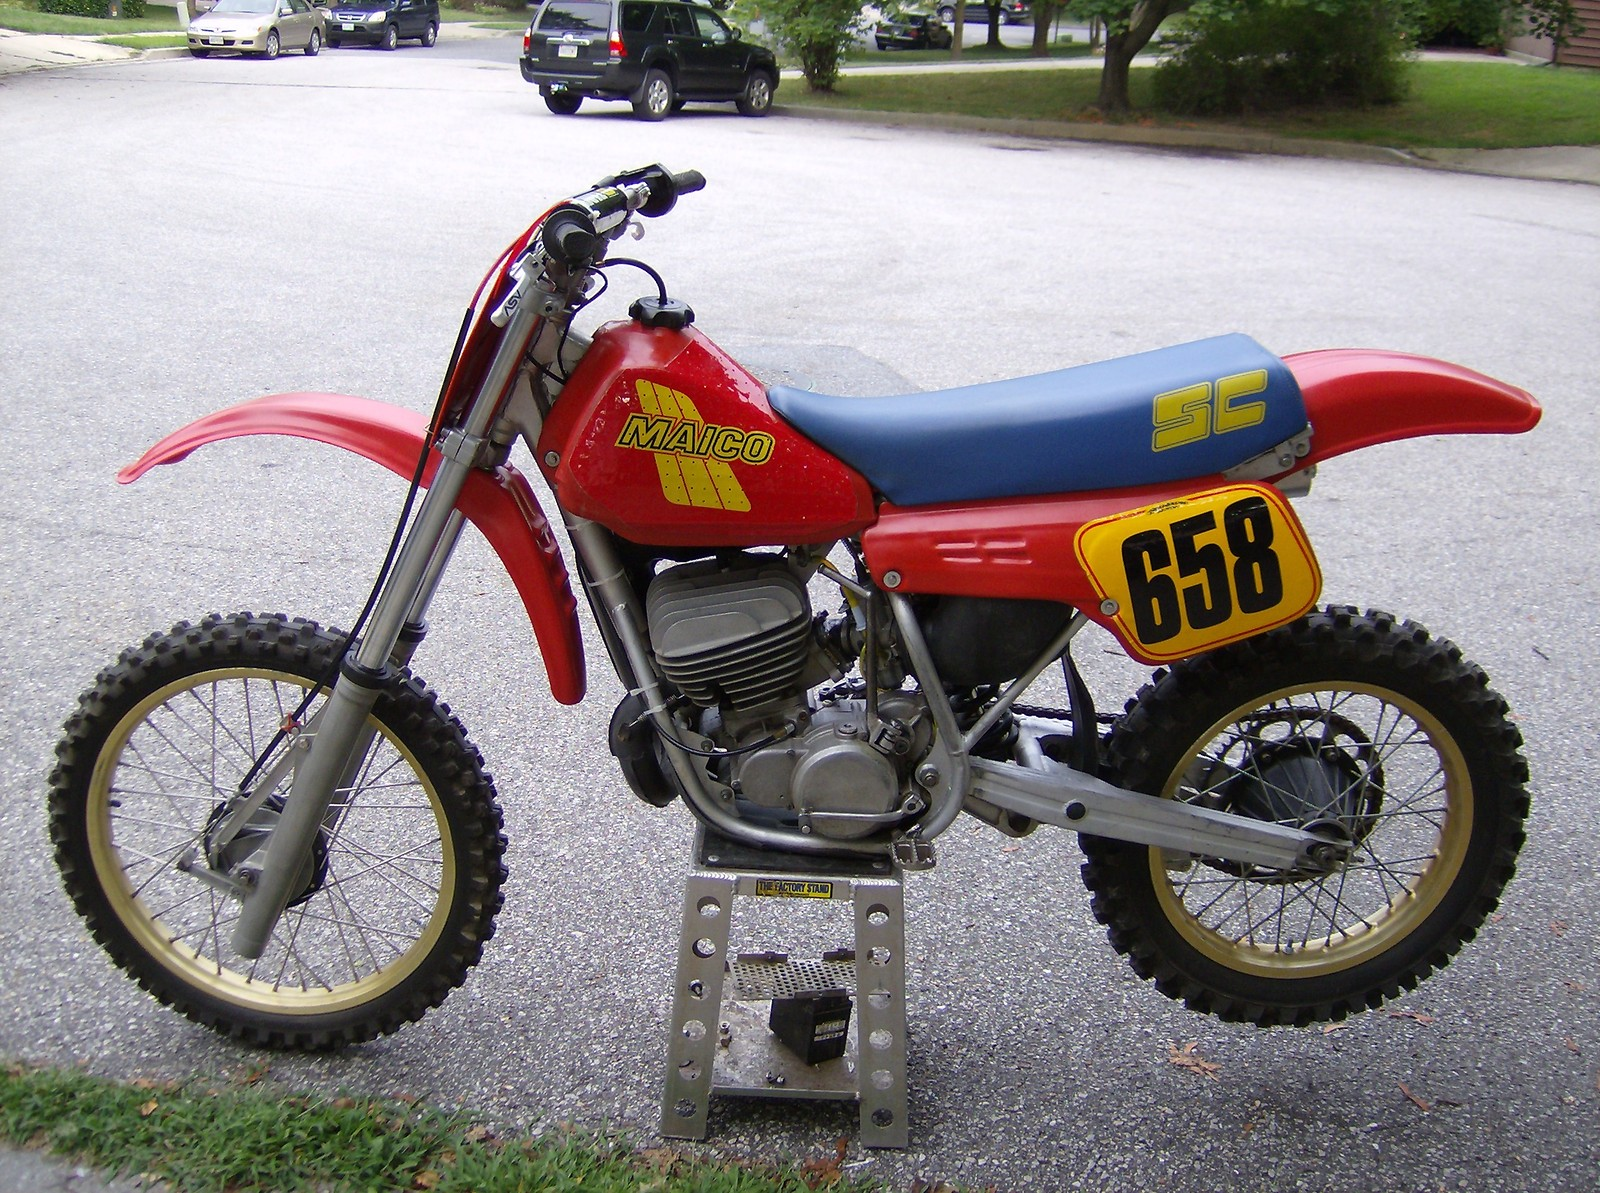 Maico GME 250 1984 images #102390